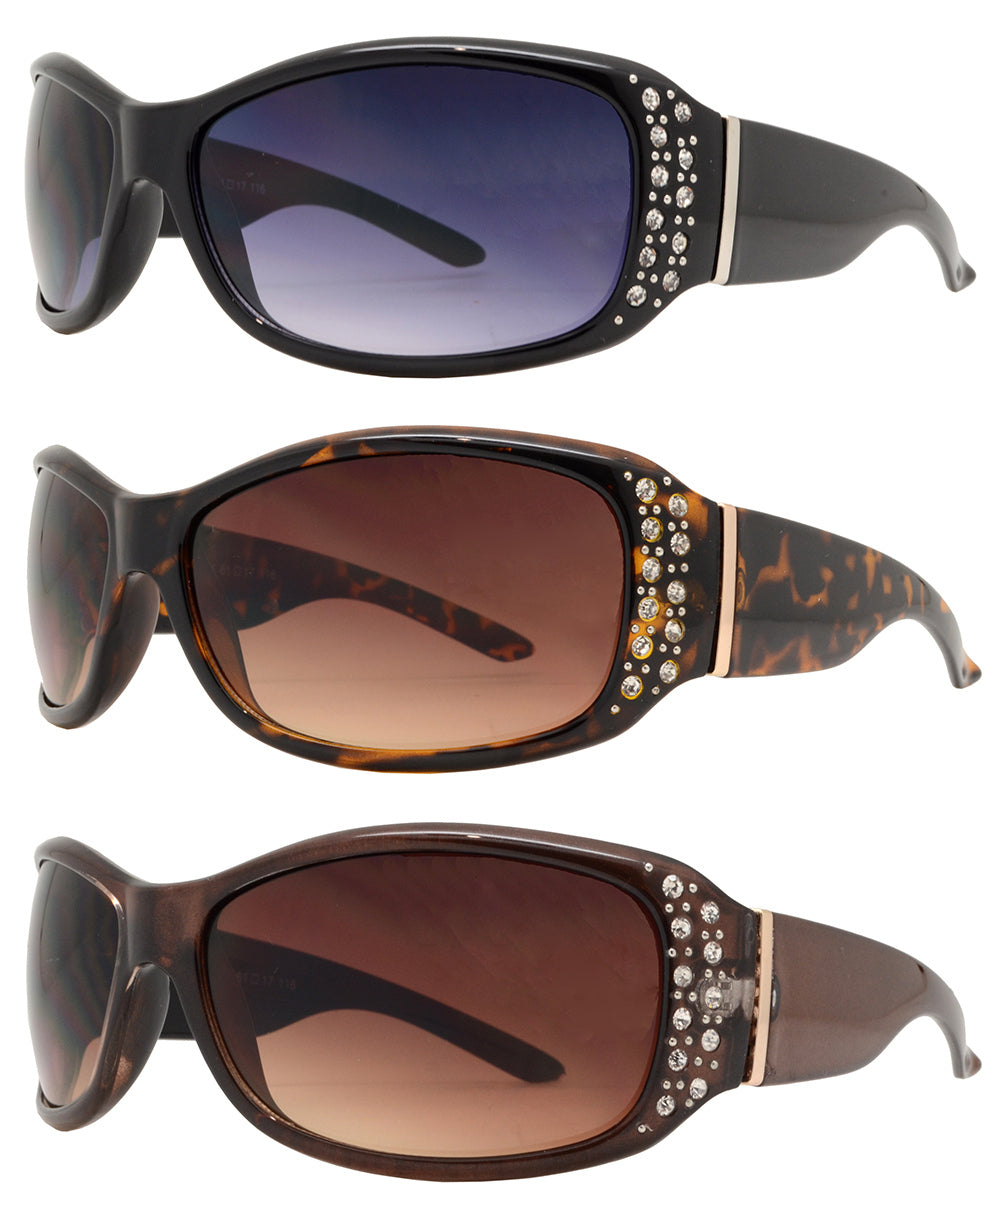 Dynasol Eyewear - Wholesale Sunglasses - 7808 BX - Women's Rectangular Fashion Sunglasses with Rhinestones - sunglasses